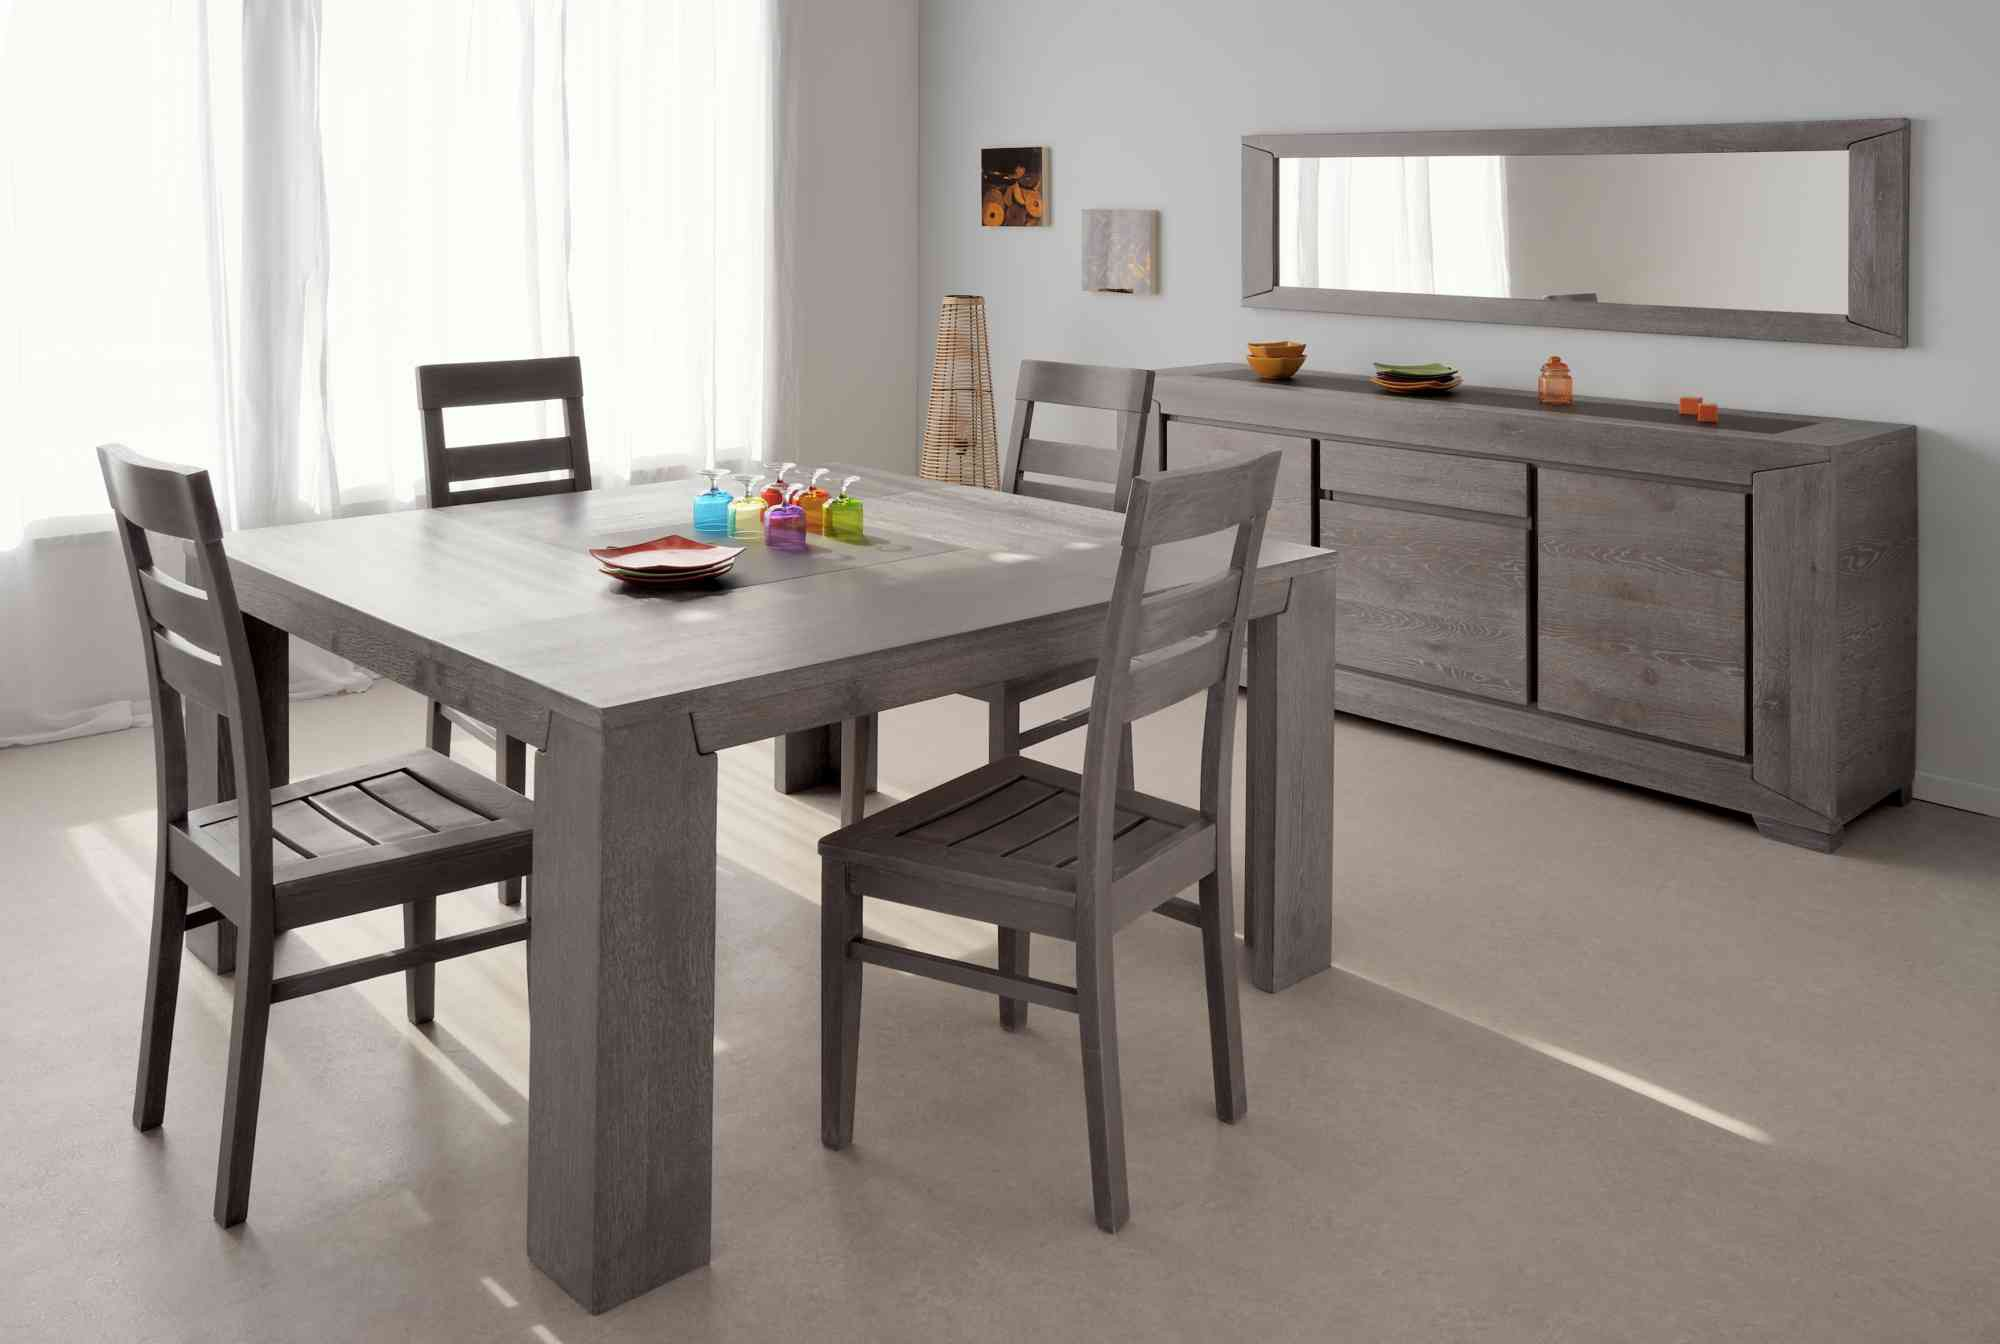 Tables et chaises de salle a manger but for Table salle a manger conforama fr